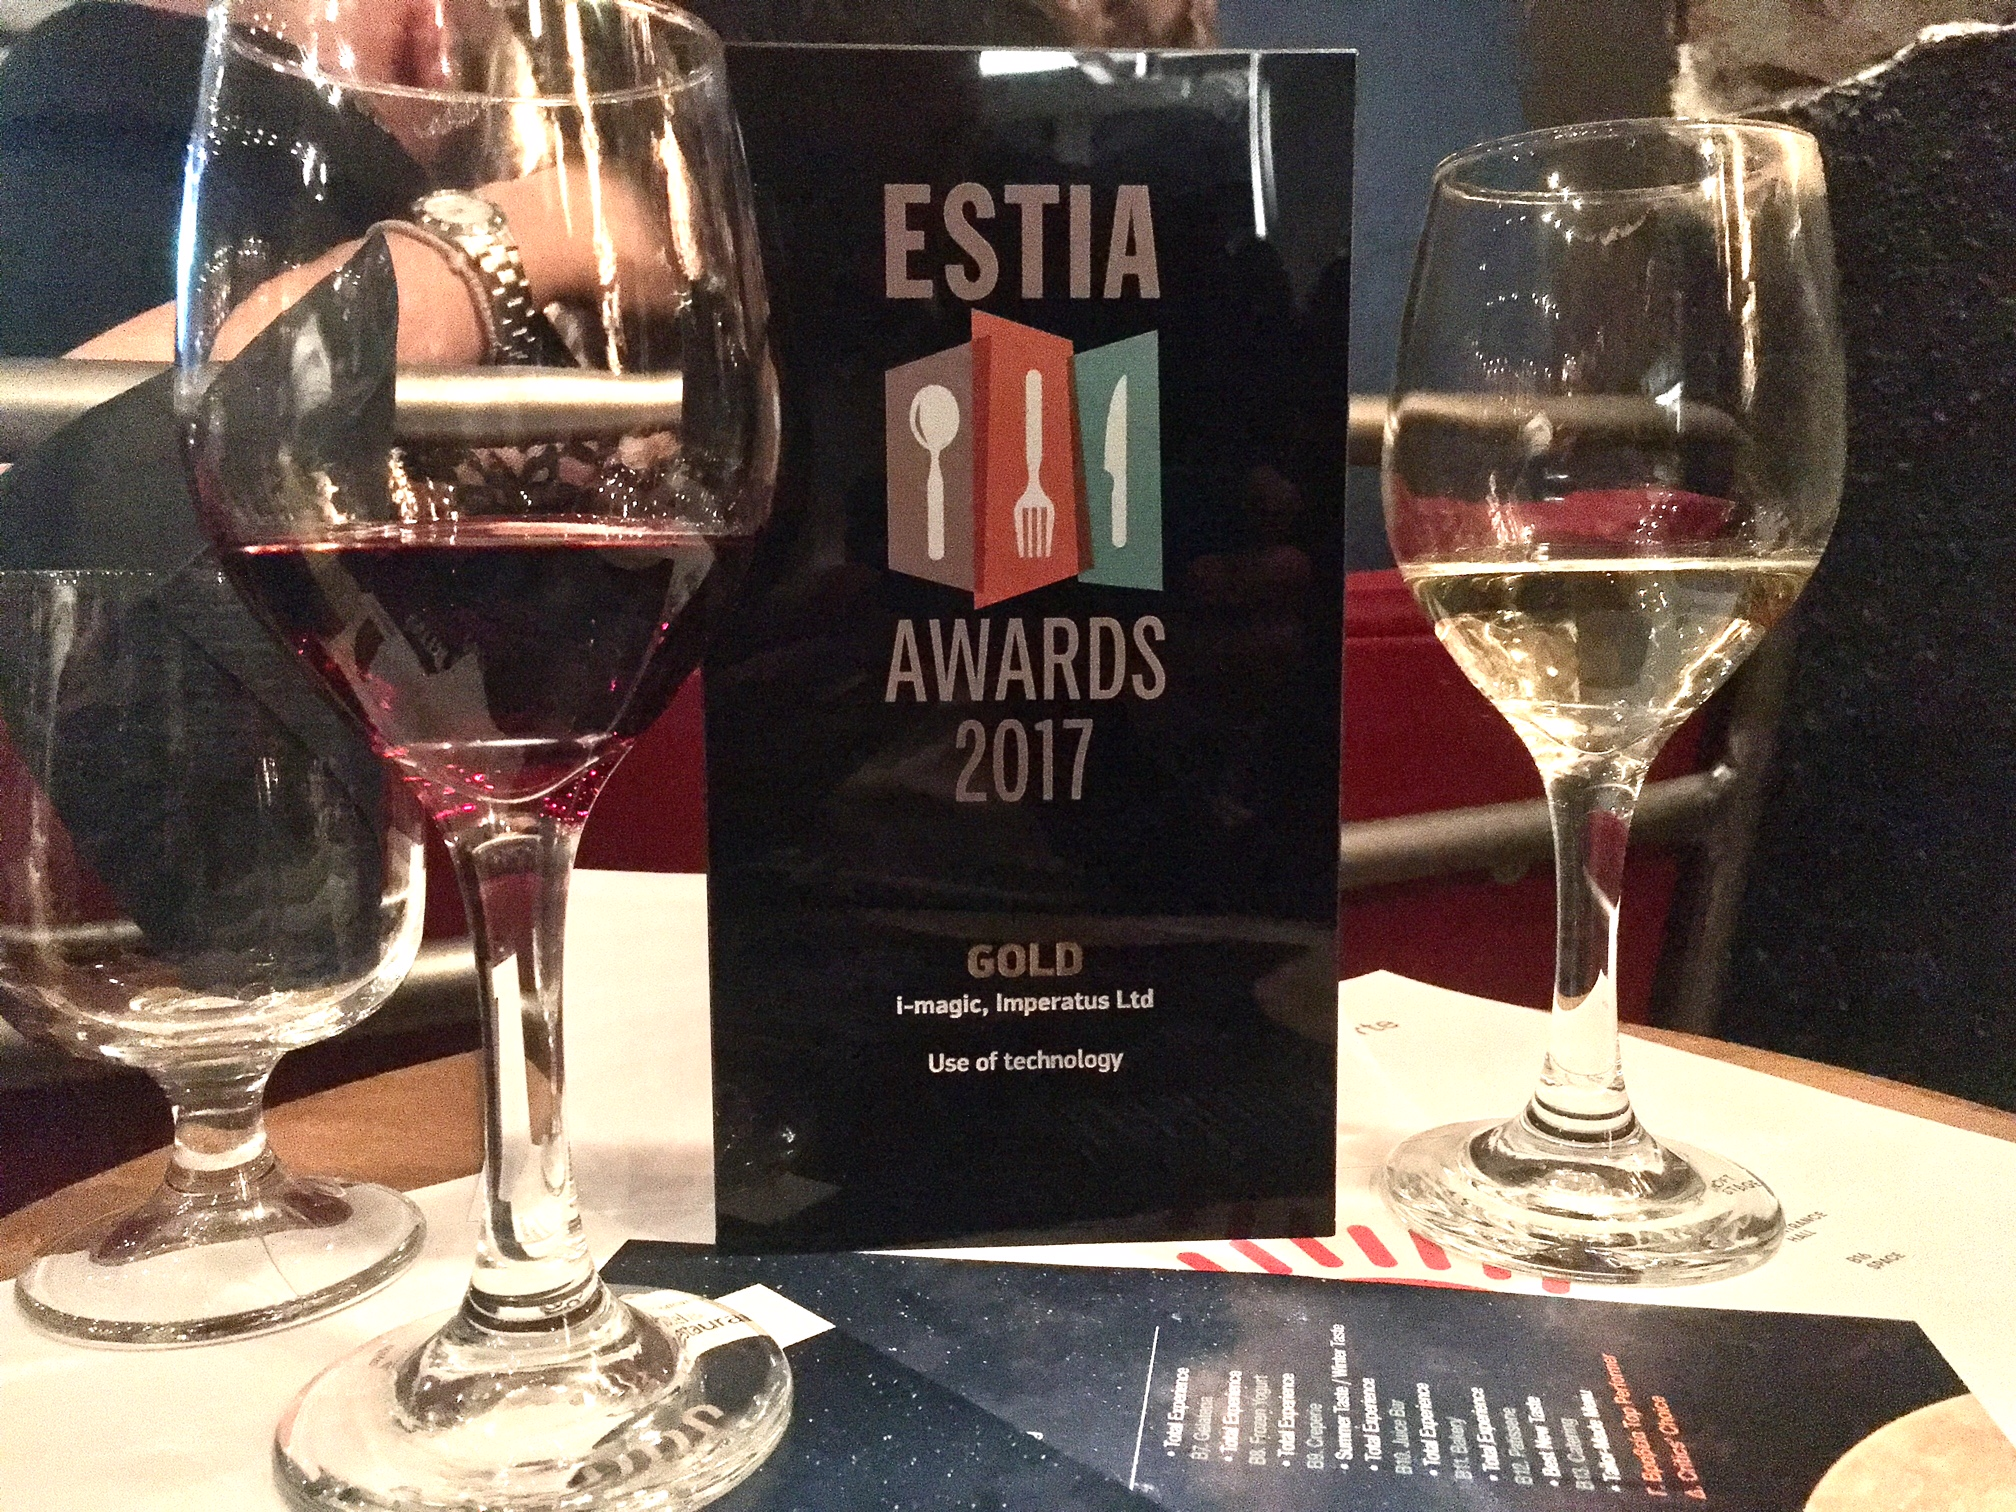 Estia Awards 2017